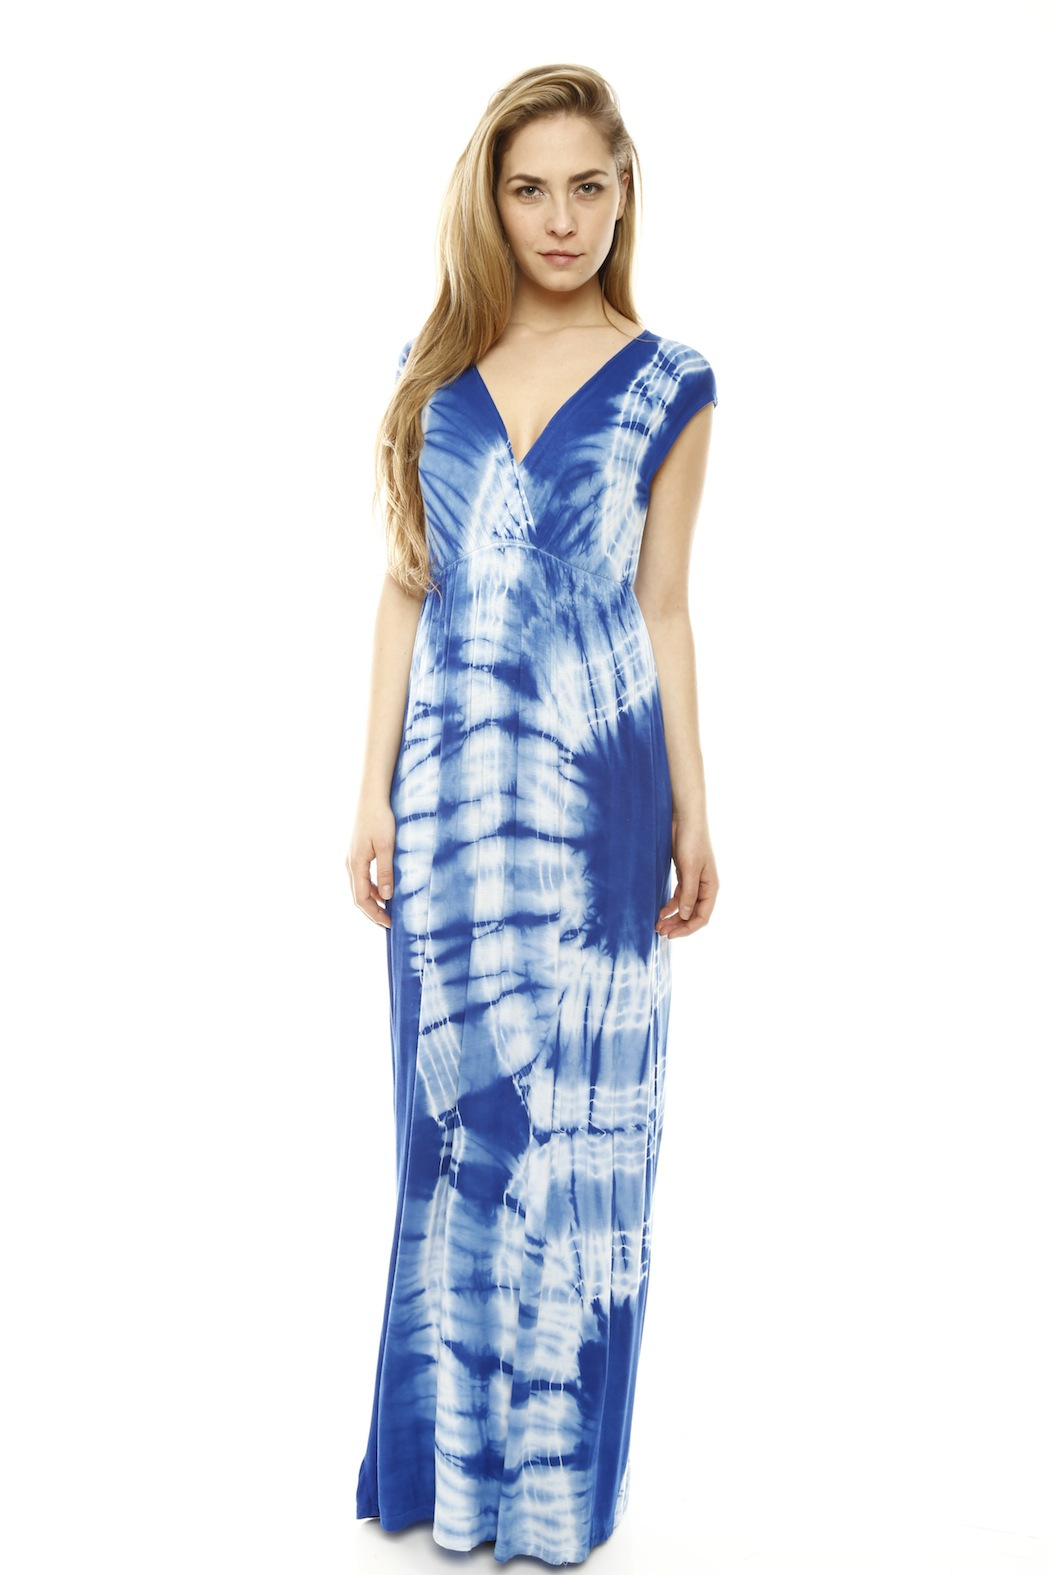 Girlfriends Tie-Dye Maxi Dress from Arizona by Girlfriends ...